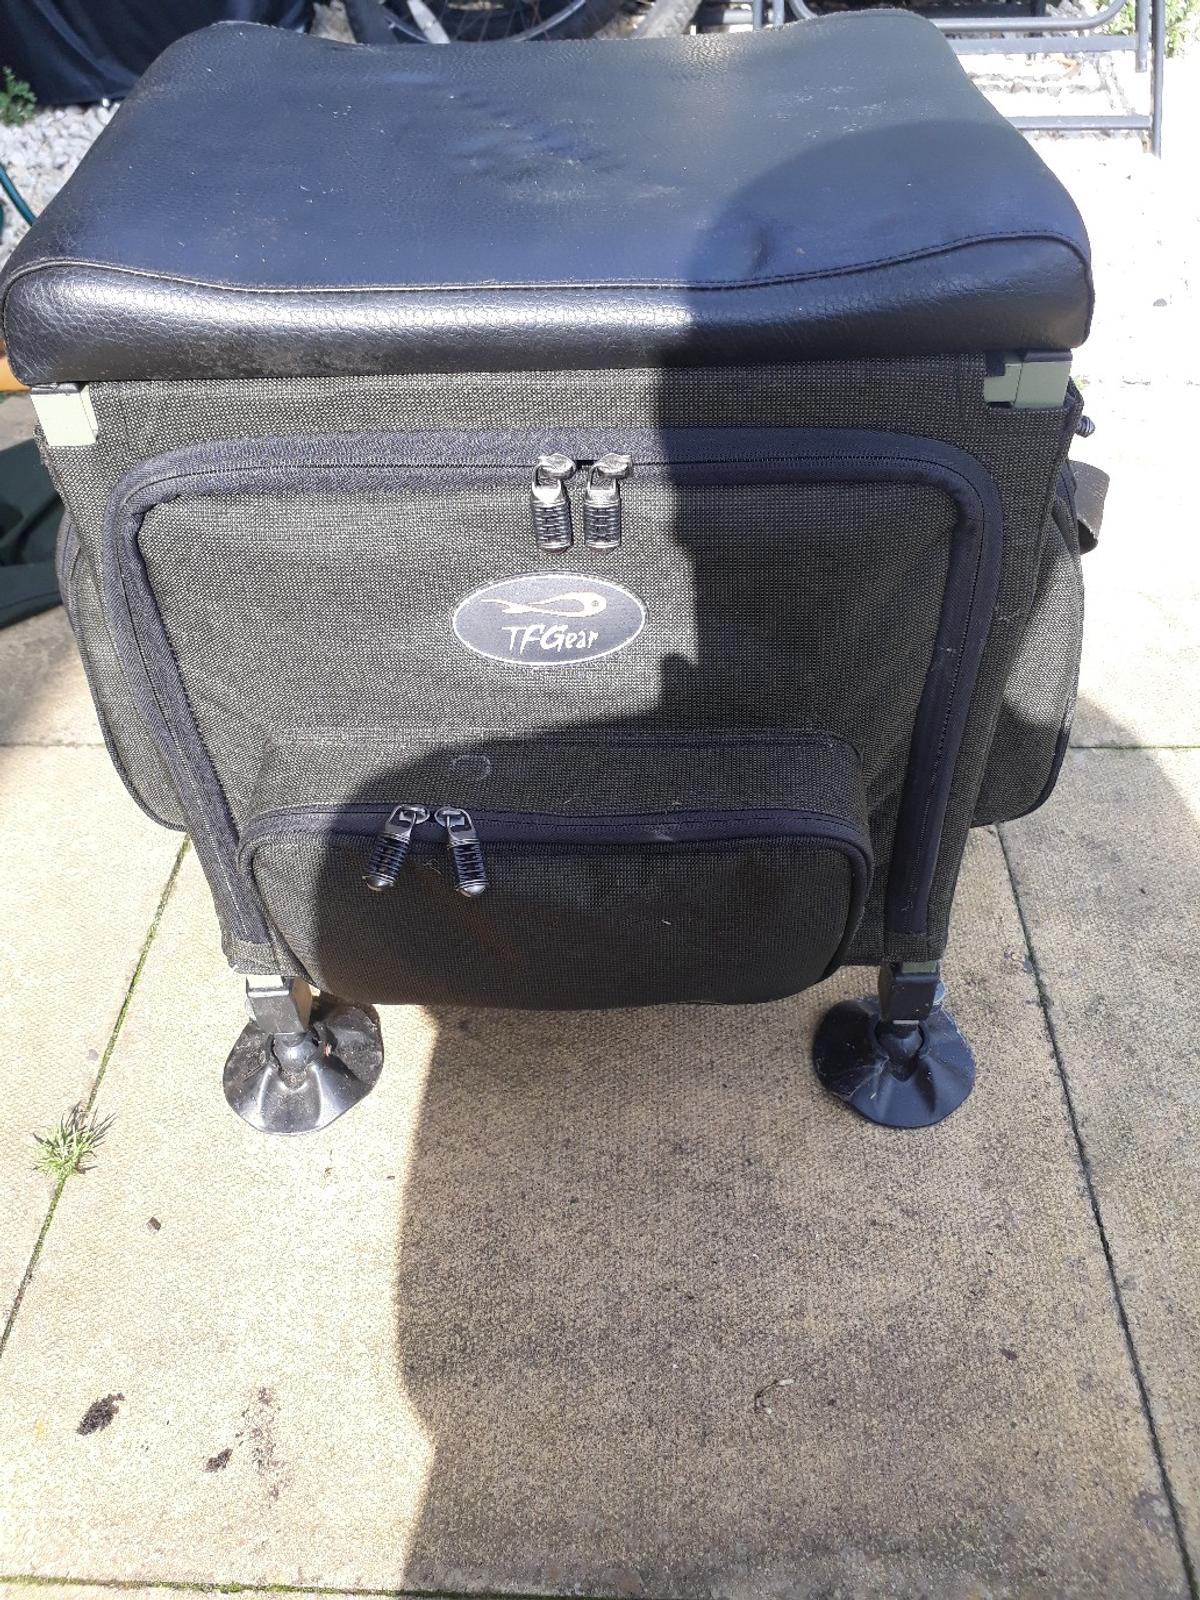 TF Gear Fishing tackle box/seat in Walsall for £50 00 for